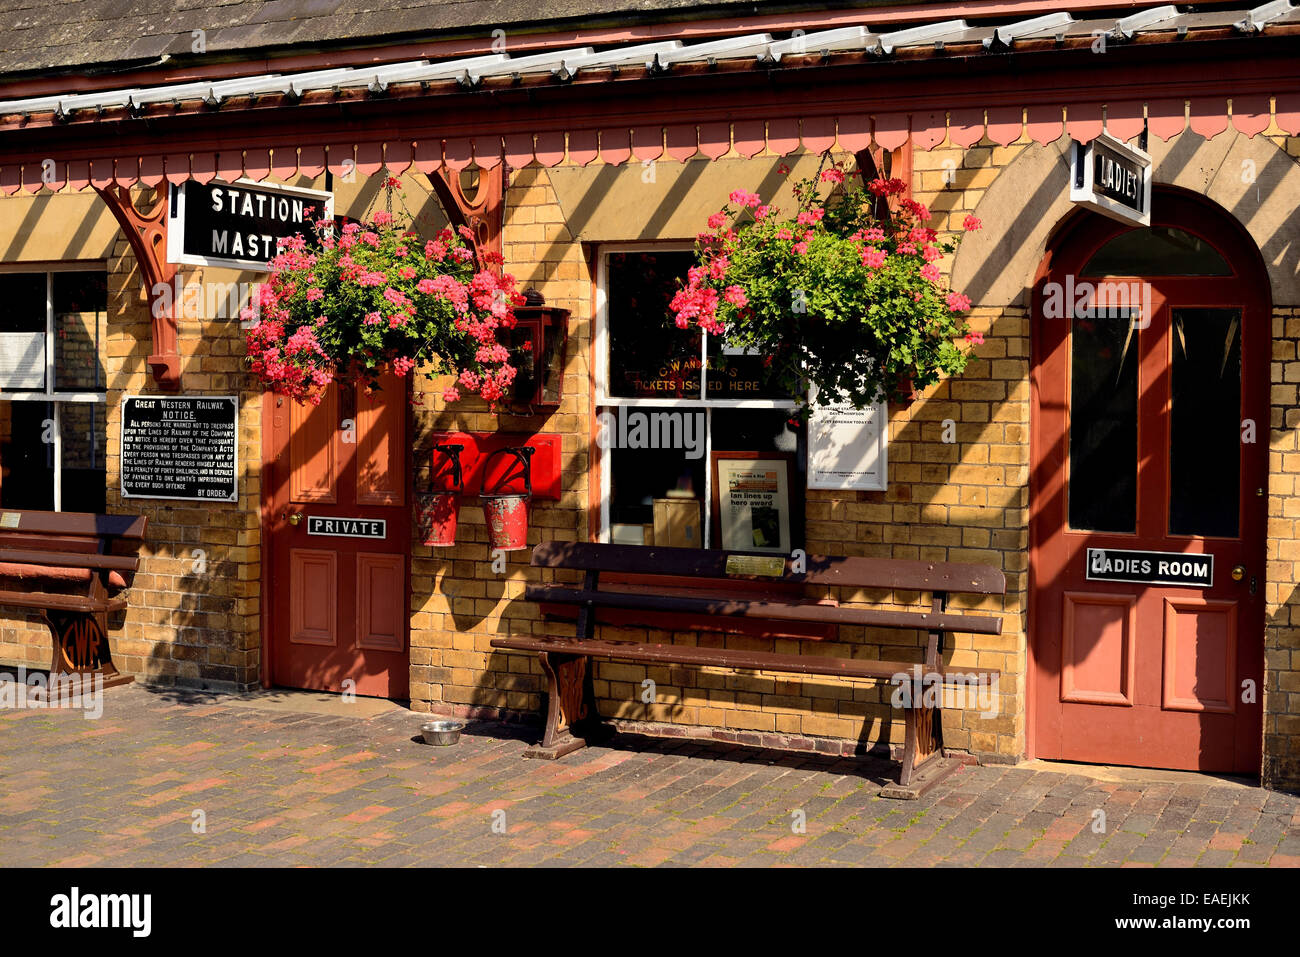 Station building at Arley on the Severn Valley Railway. - Stock Image